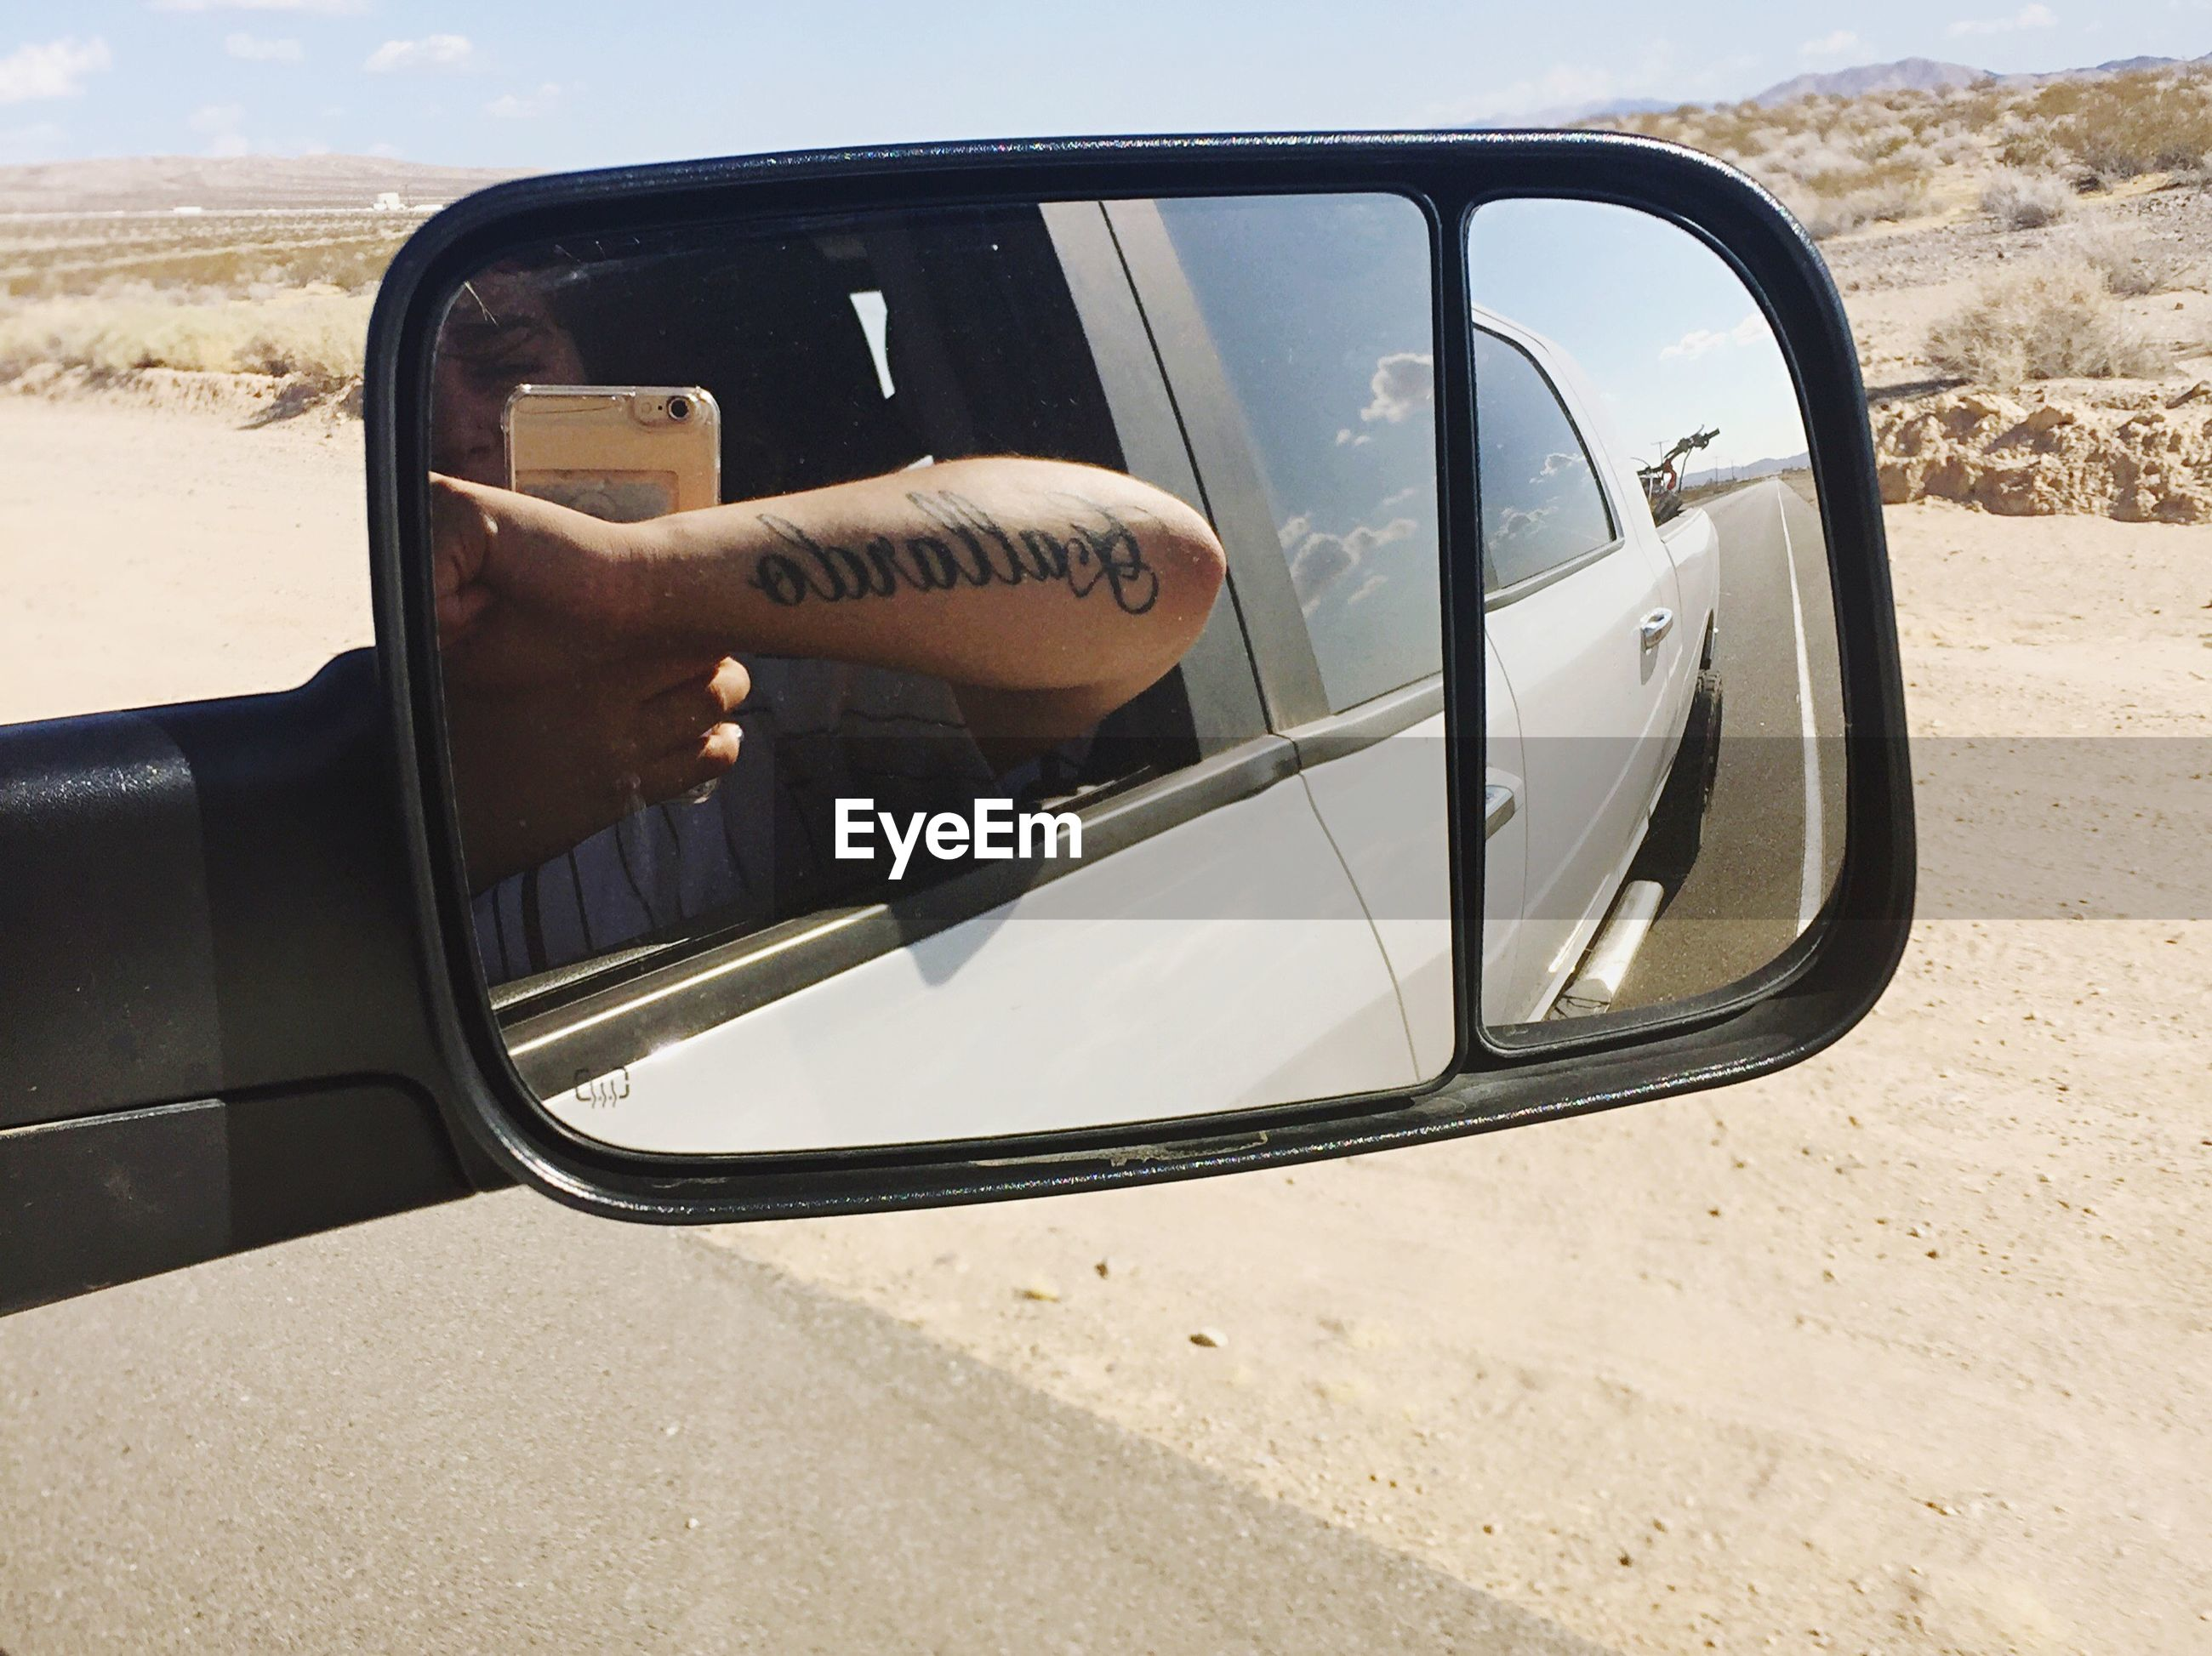 mode of transport, car, transportation, land vehicle, travel, street, side-view mirror, part of, road, car interior, reflection, close-up, road trip, day, outdoors, cloud - sky